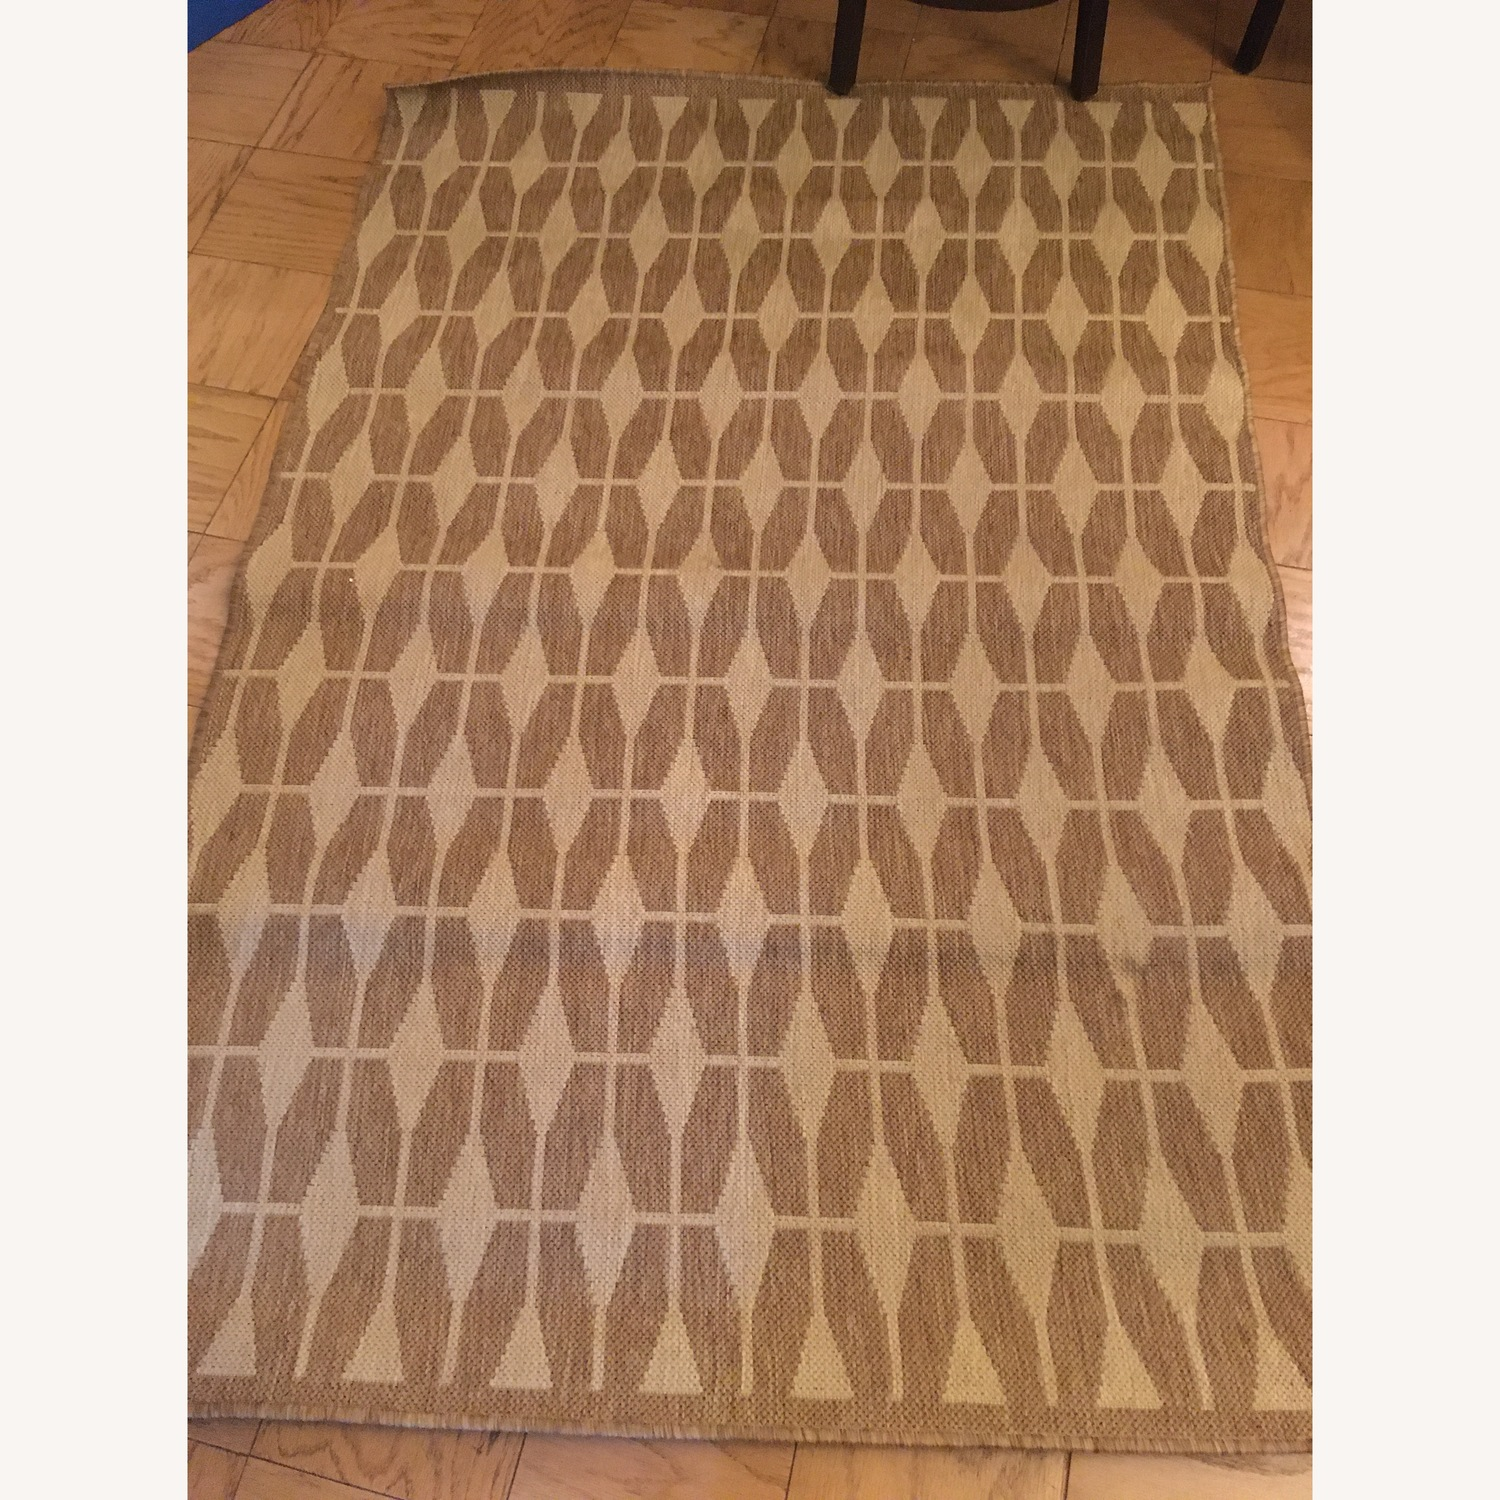 Crate & Barrel Aldo II Rug in Flax - image-1